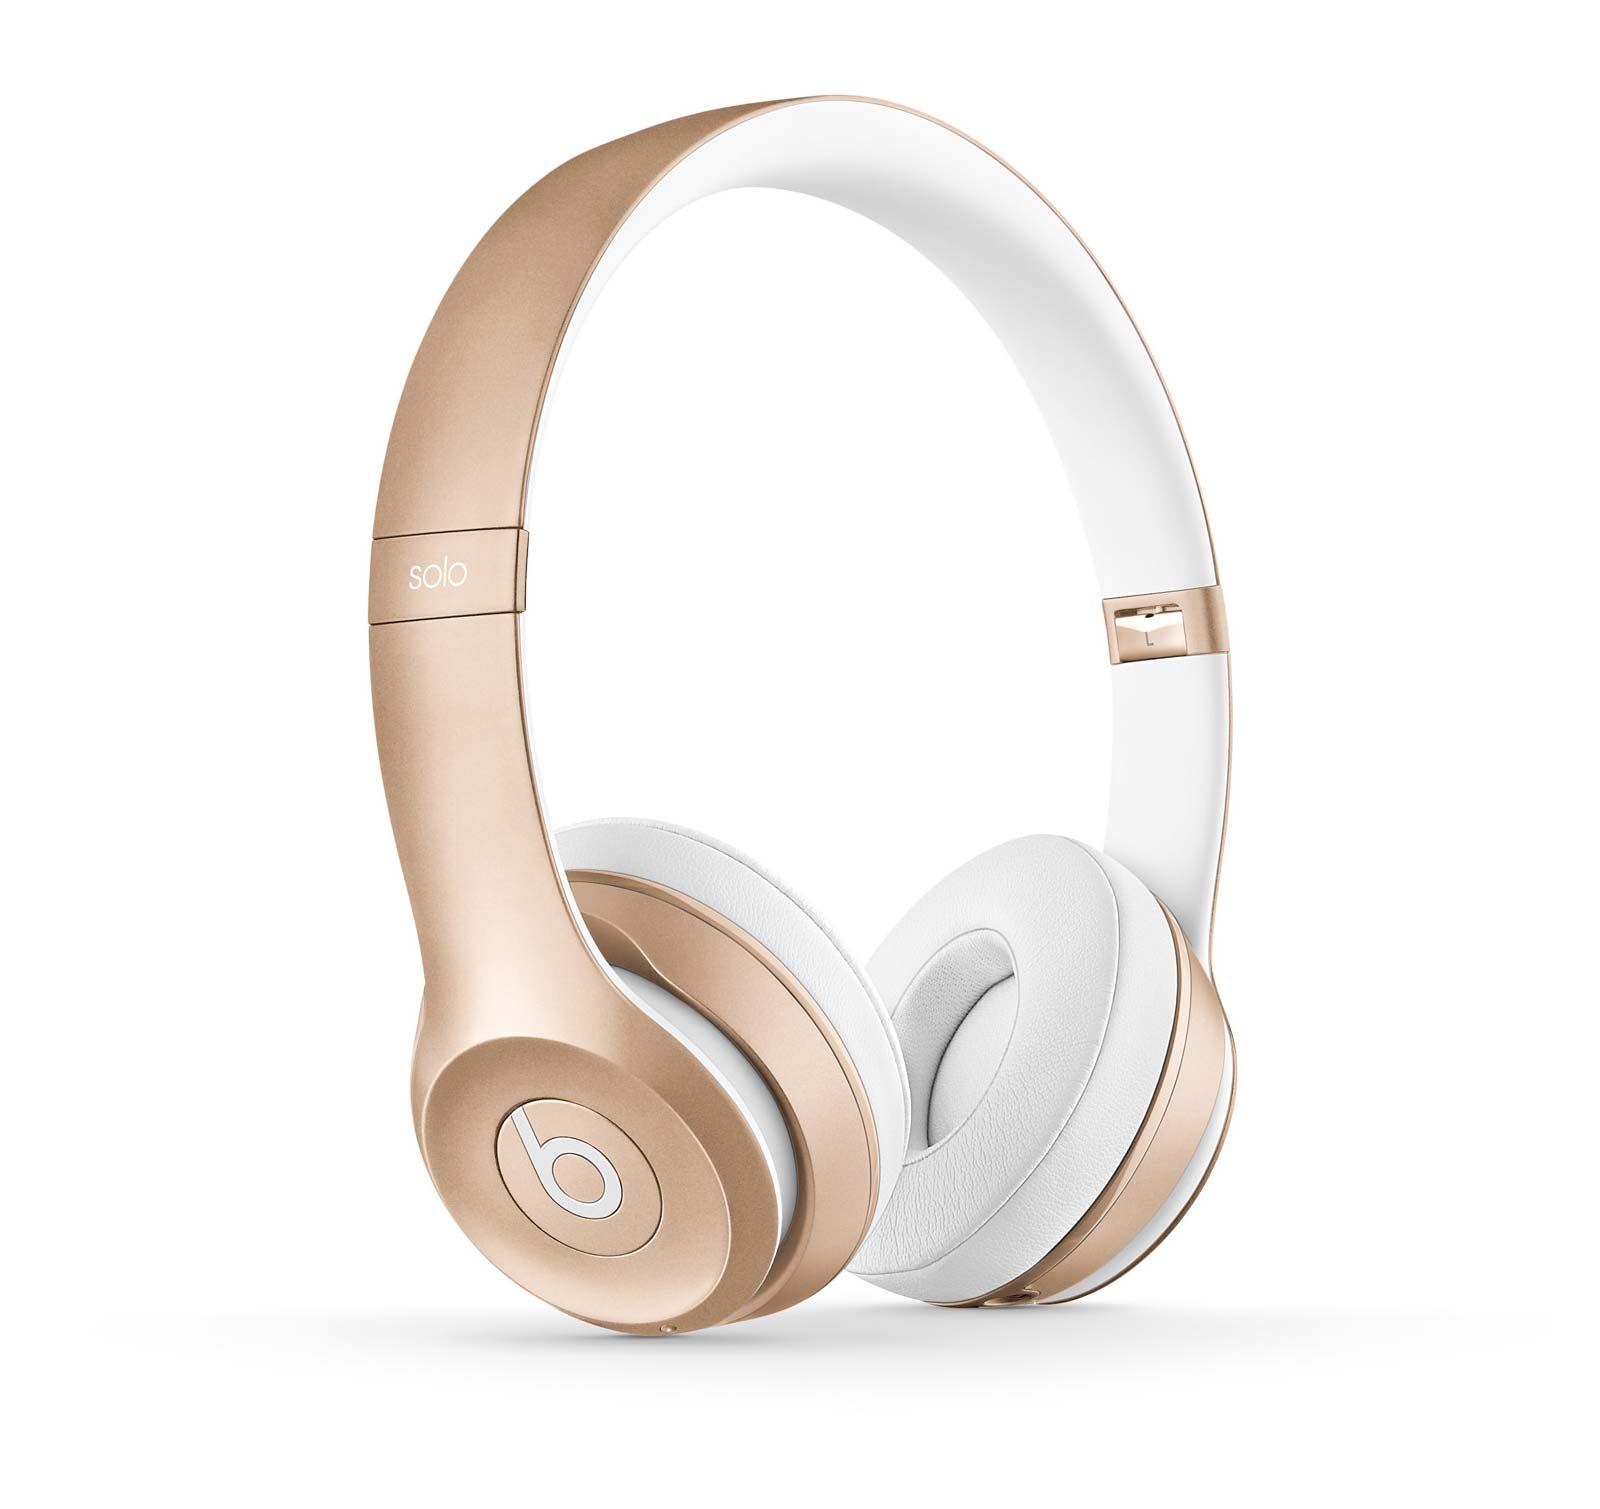 Beats by Dr. Dre Solo 2 Wireless - Gold On-ear Headphones with Remote Talk at Sears.com